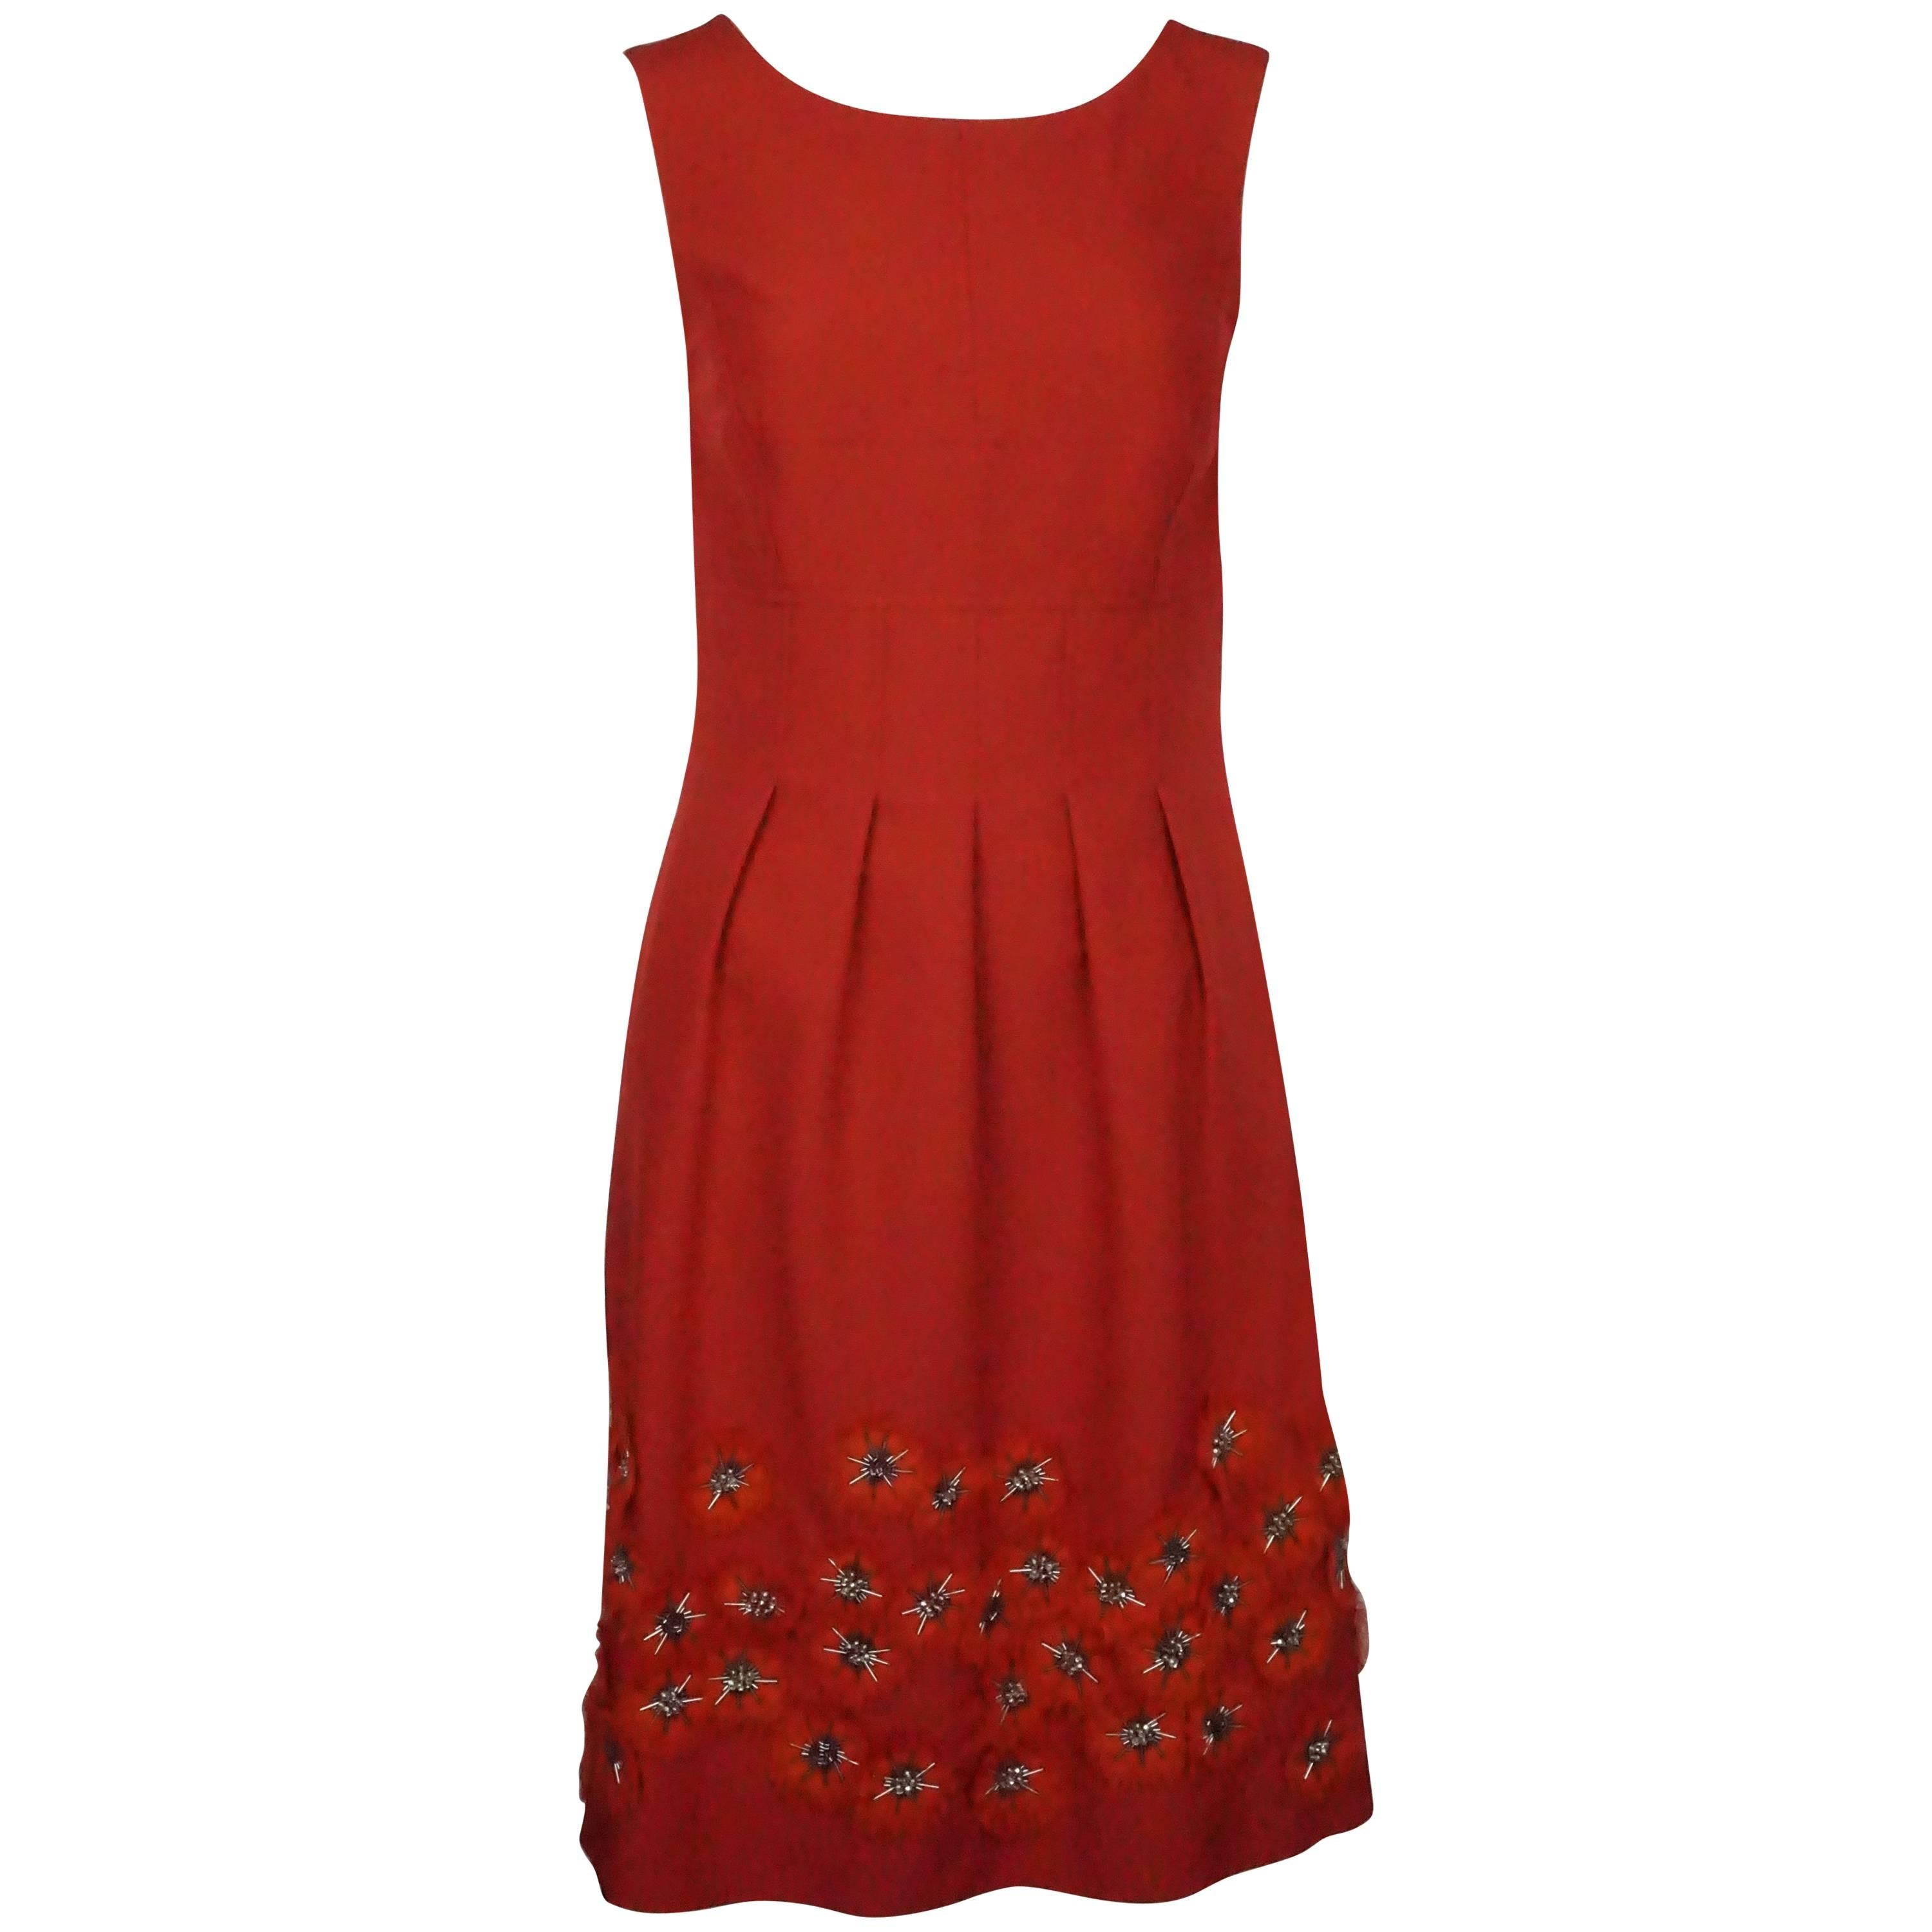 Lela Rose Red Silk Dress with Appliques